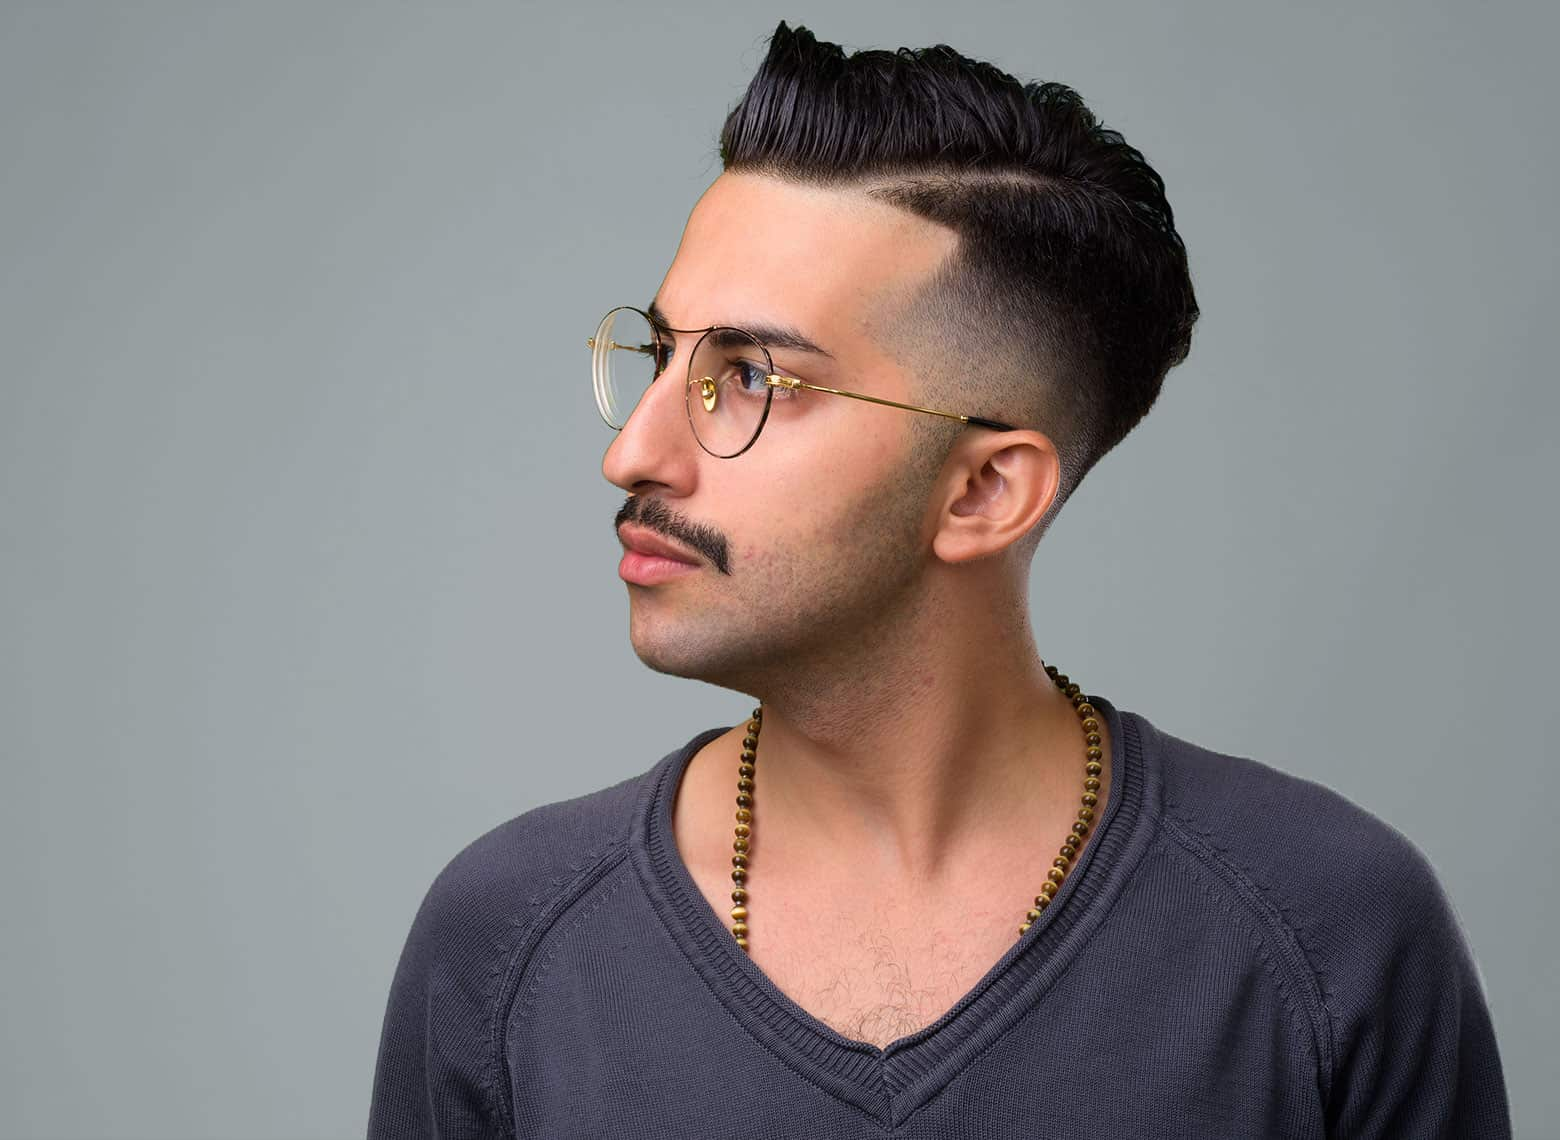 man with comb over fade